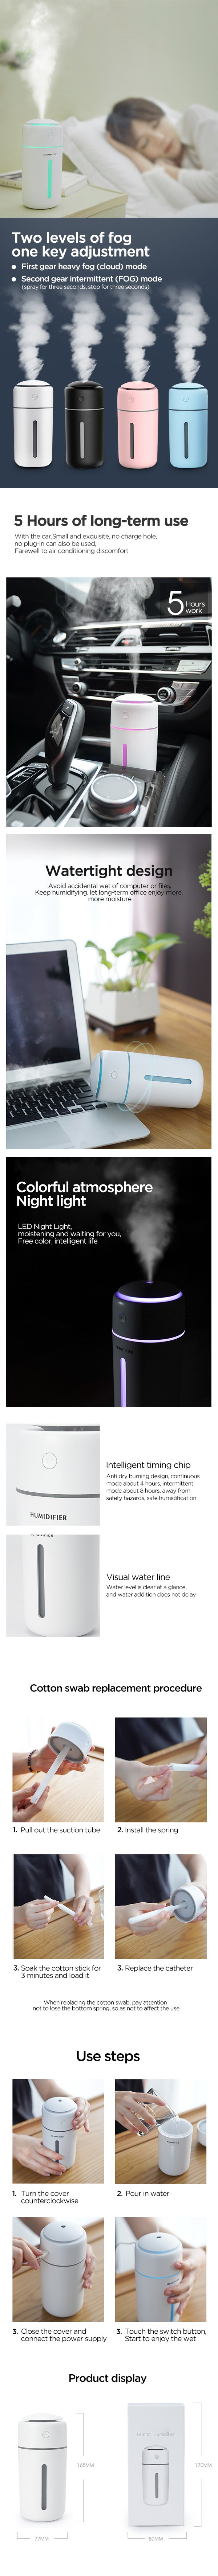 Rechargeable Smart Humidifier details